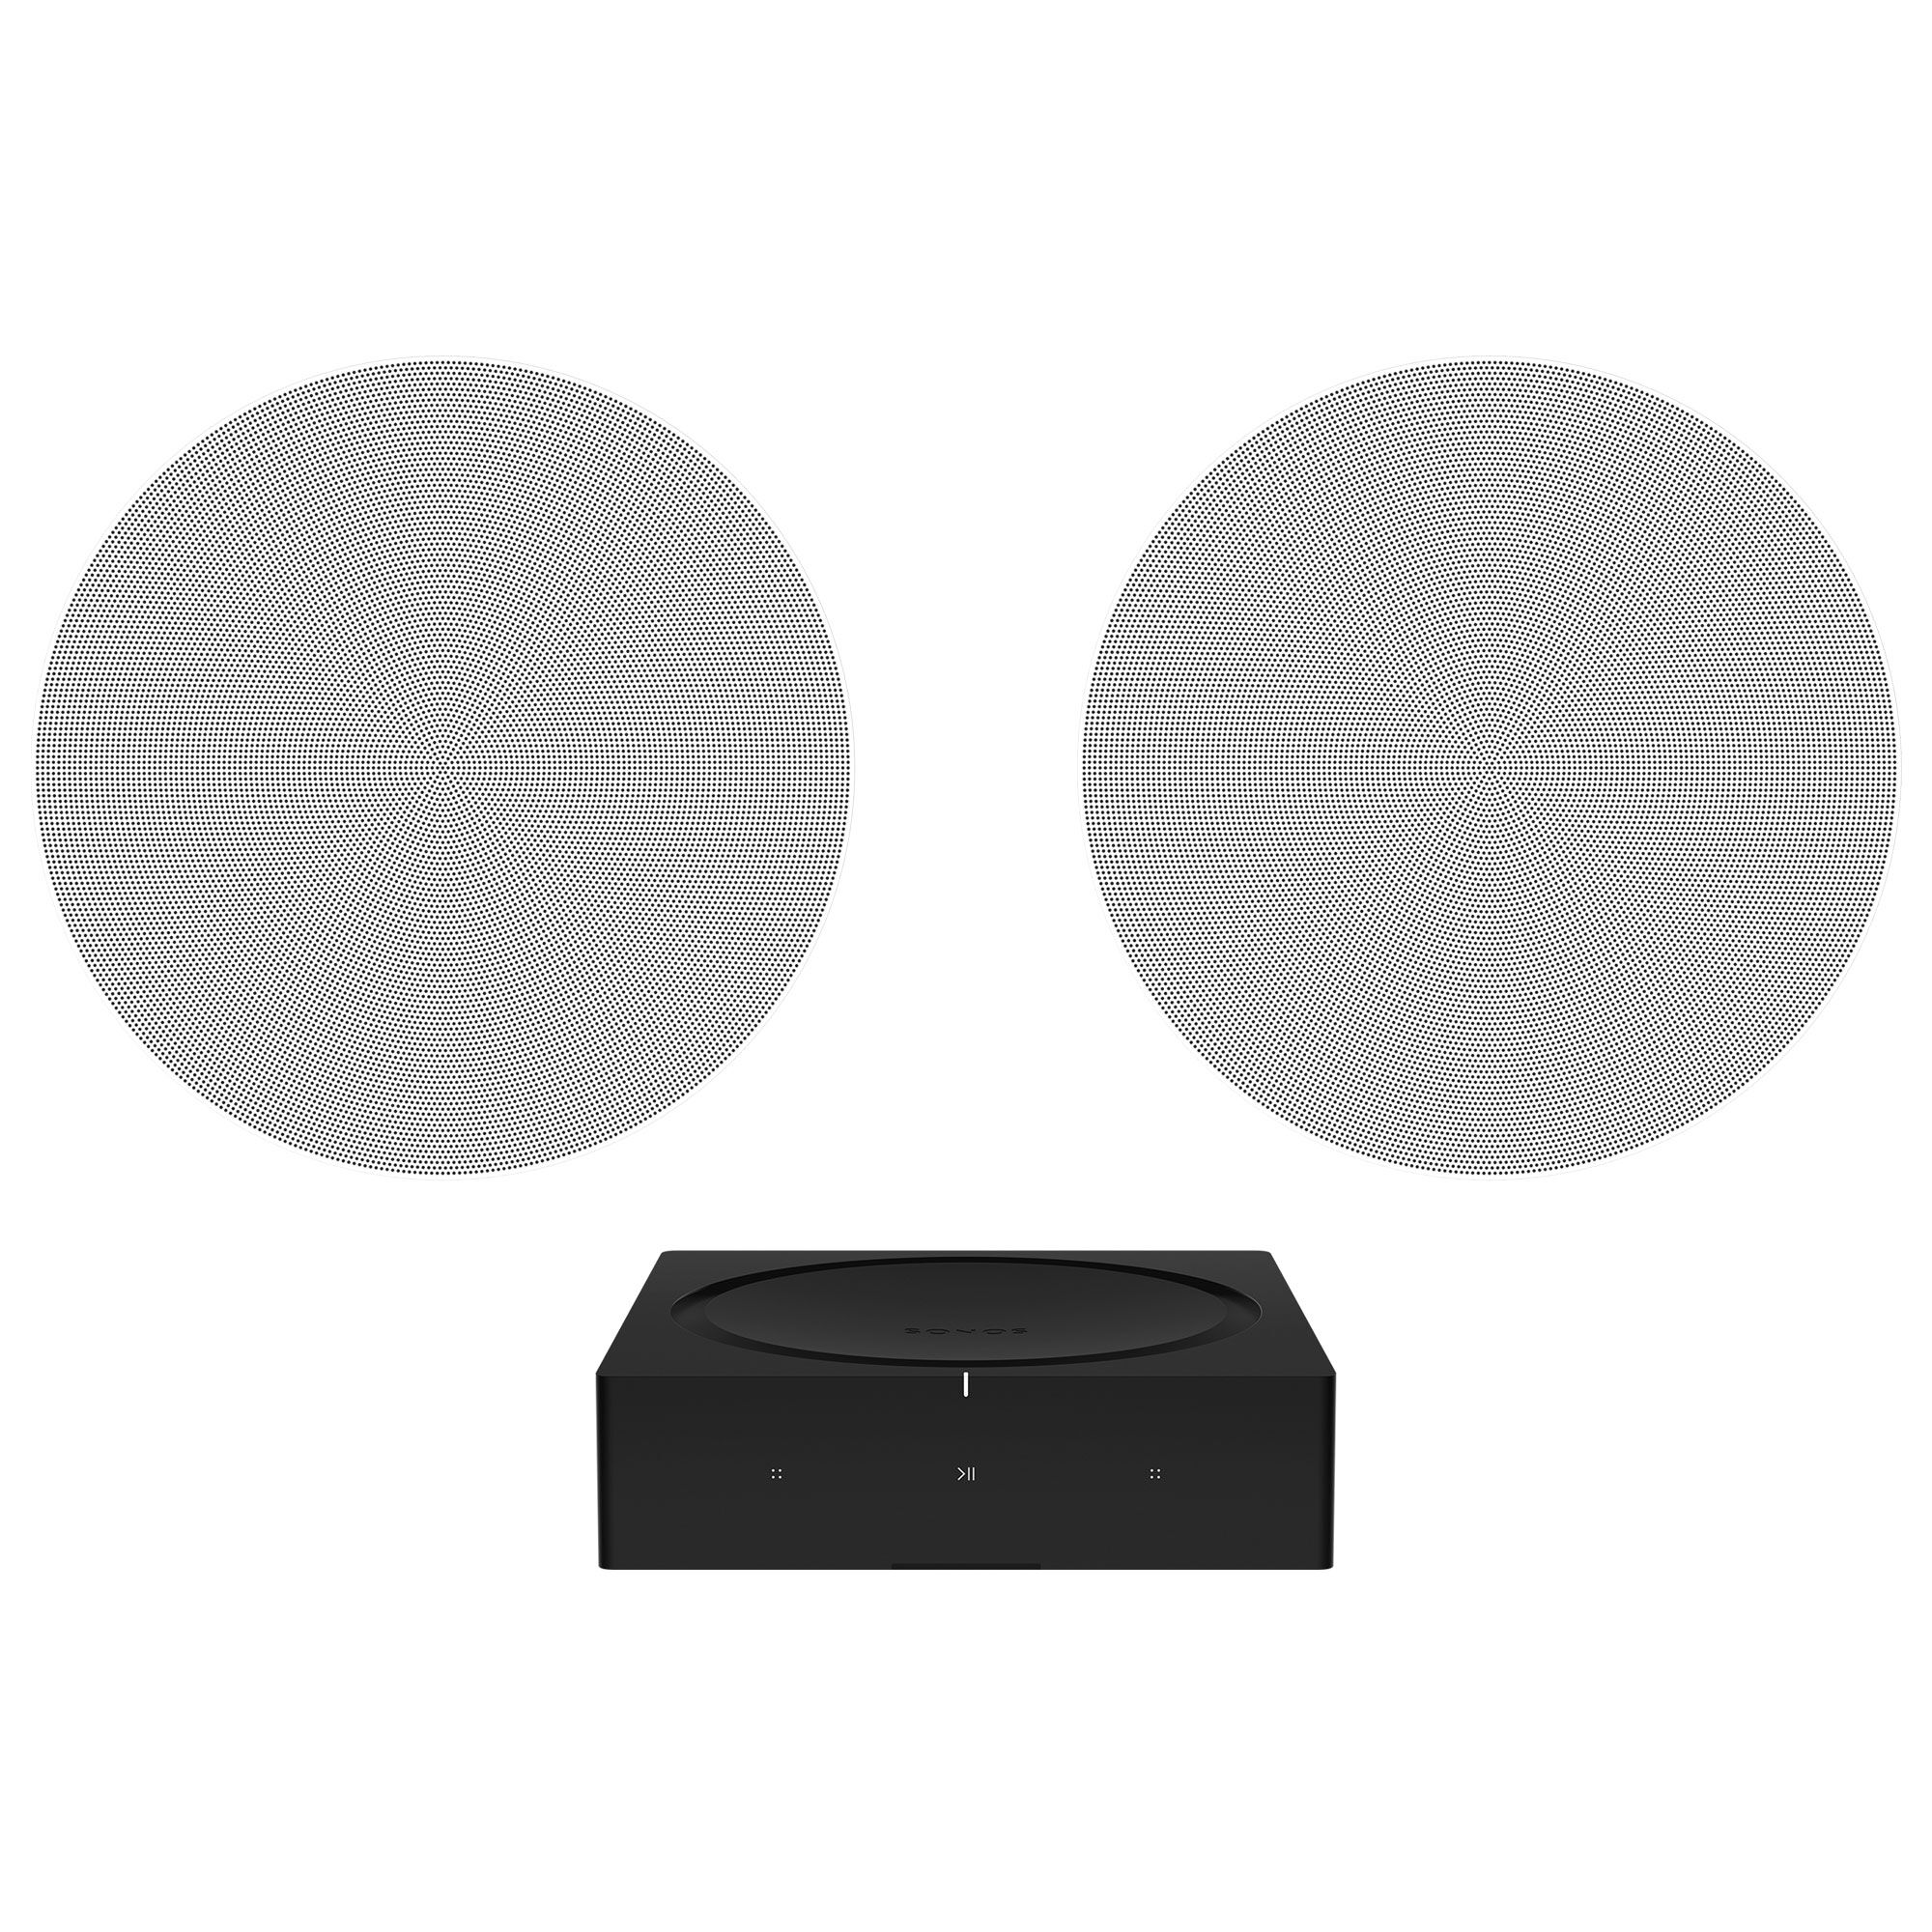 InCeiling_Speakers_&_Amp_Set__Architectural_Speakers__Customizable_Grilles__Sonos